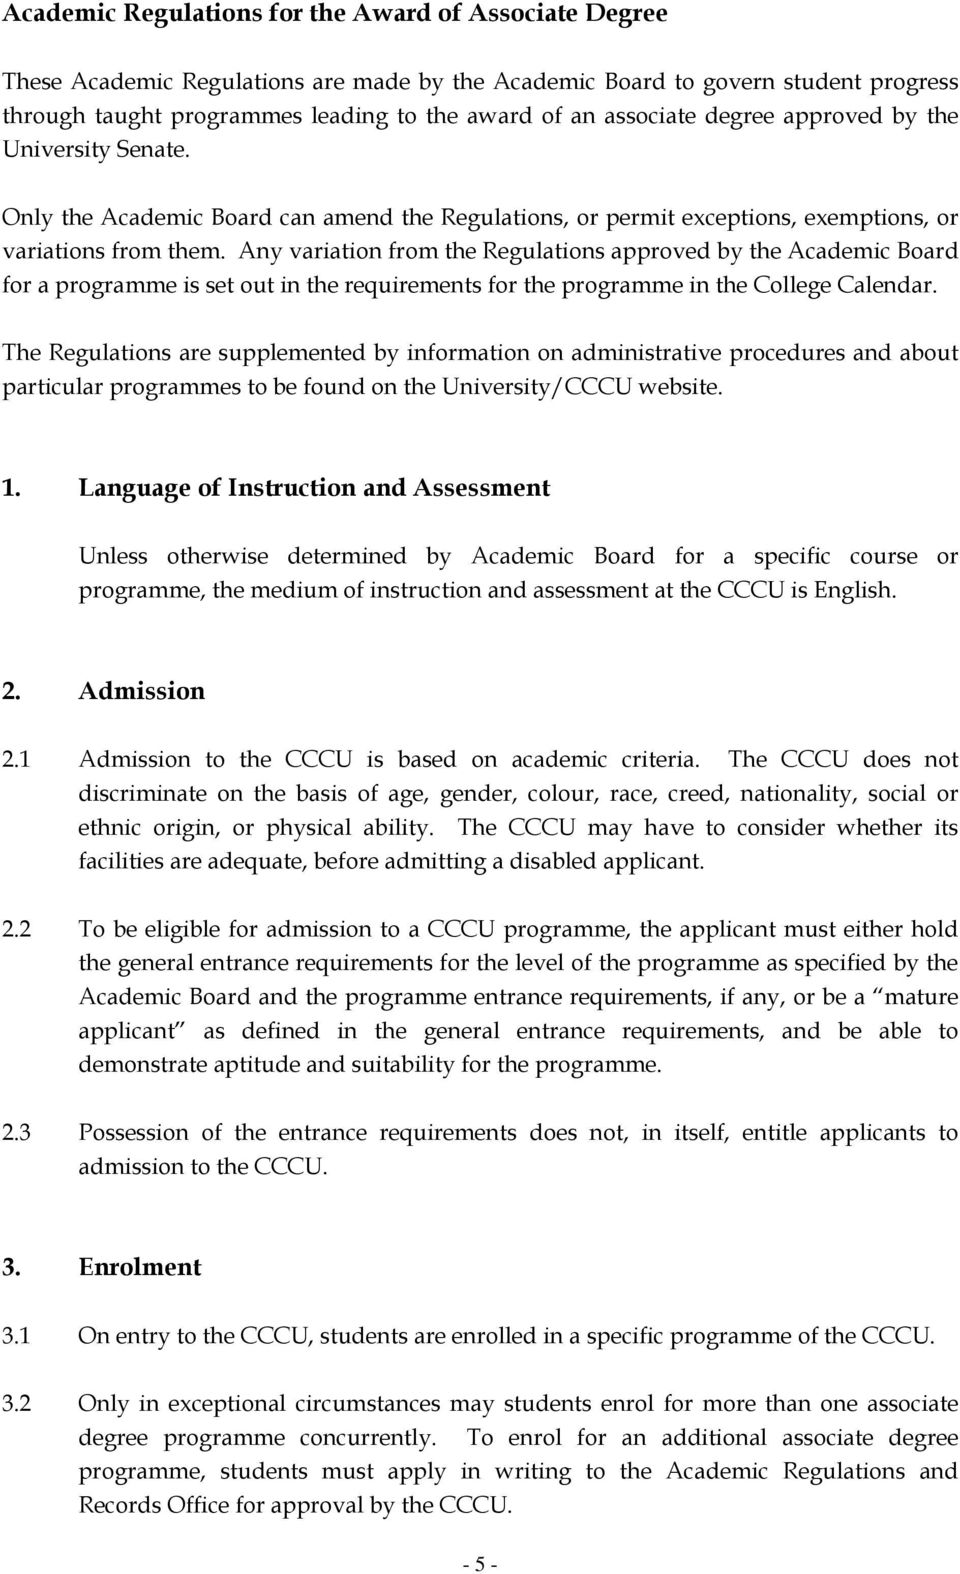 Any variation from the Regulations approved by the Academic Board for a programme is set out in the requirements for the programme in the College Calendar.